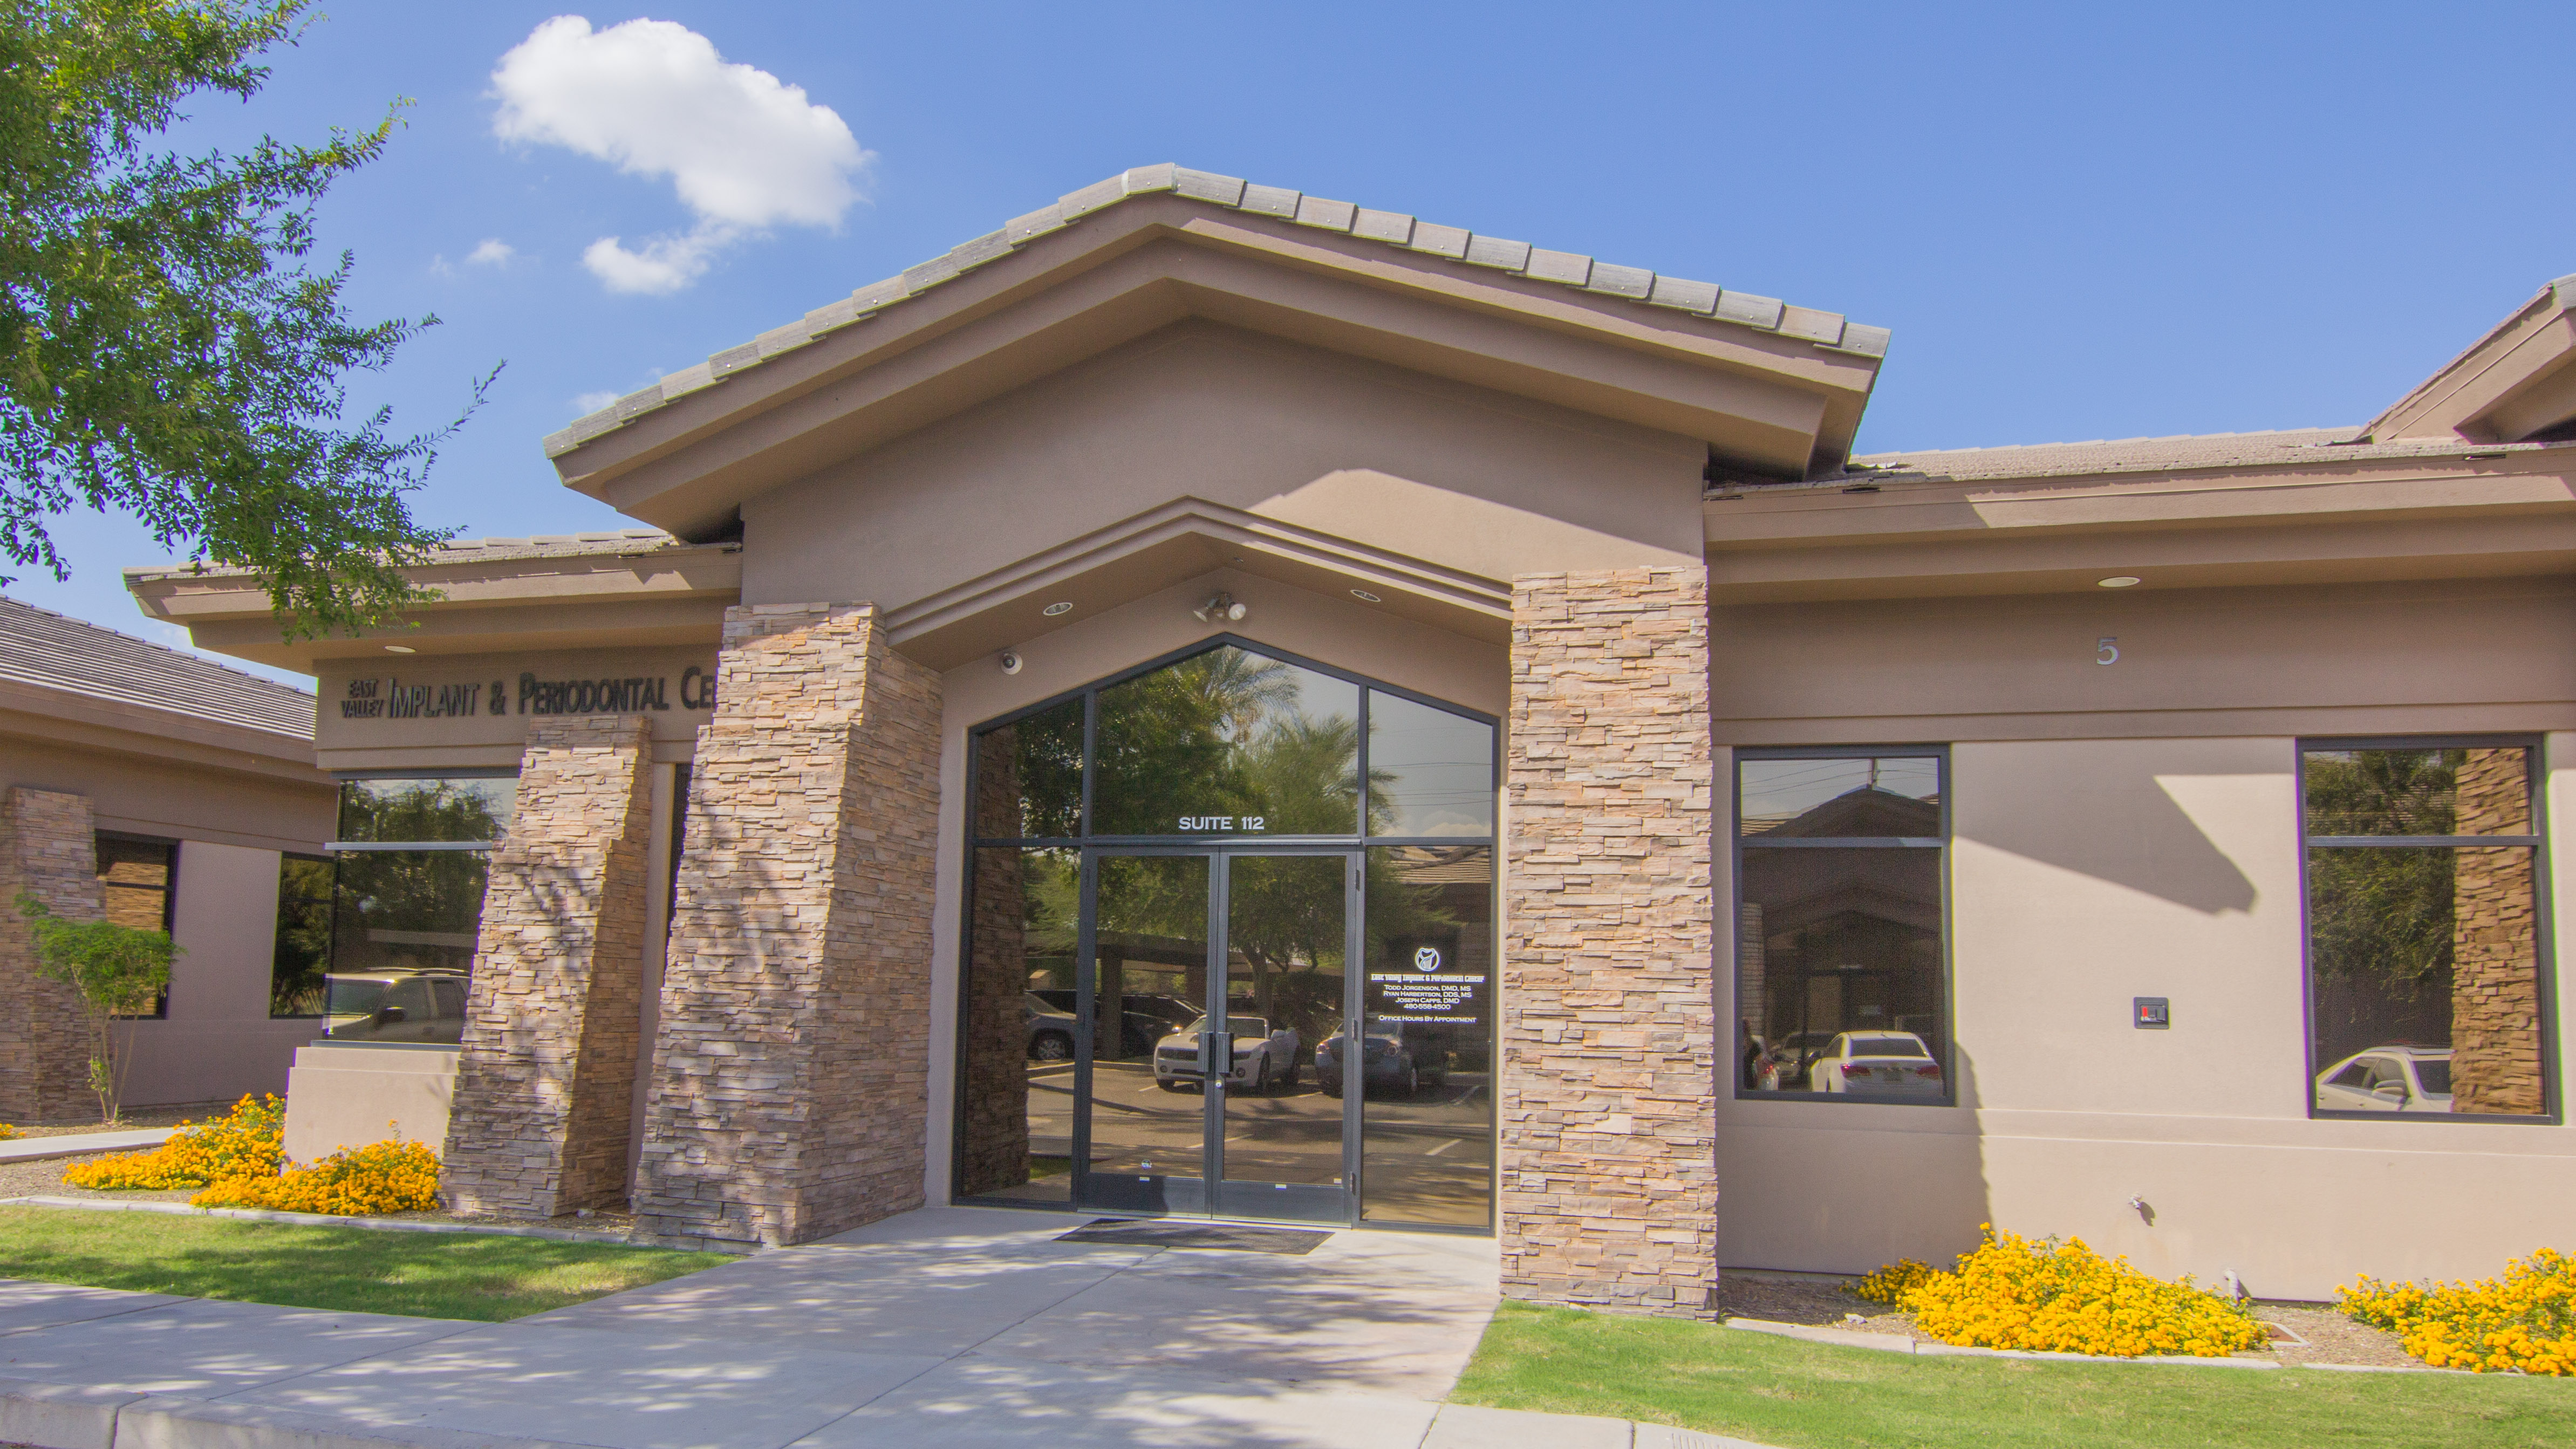 Exterior photo of periodontal center in Mesa